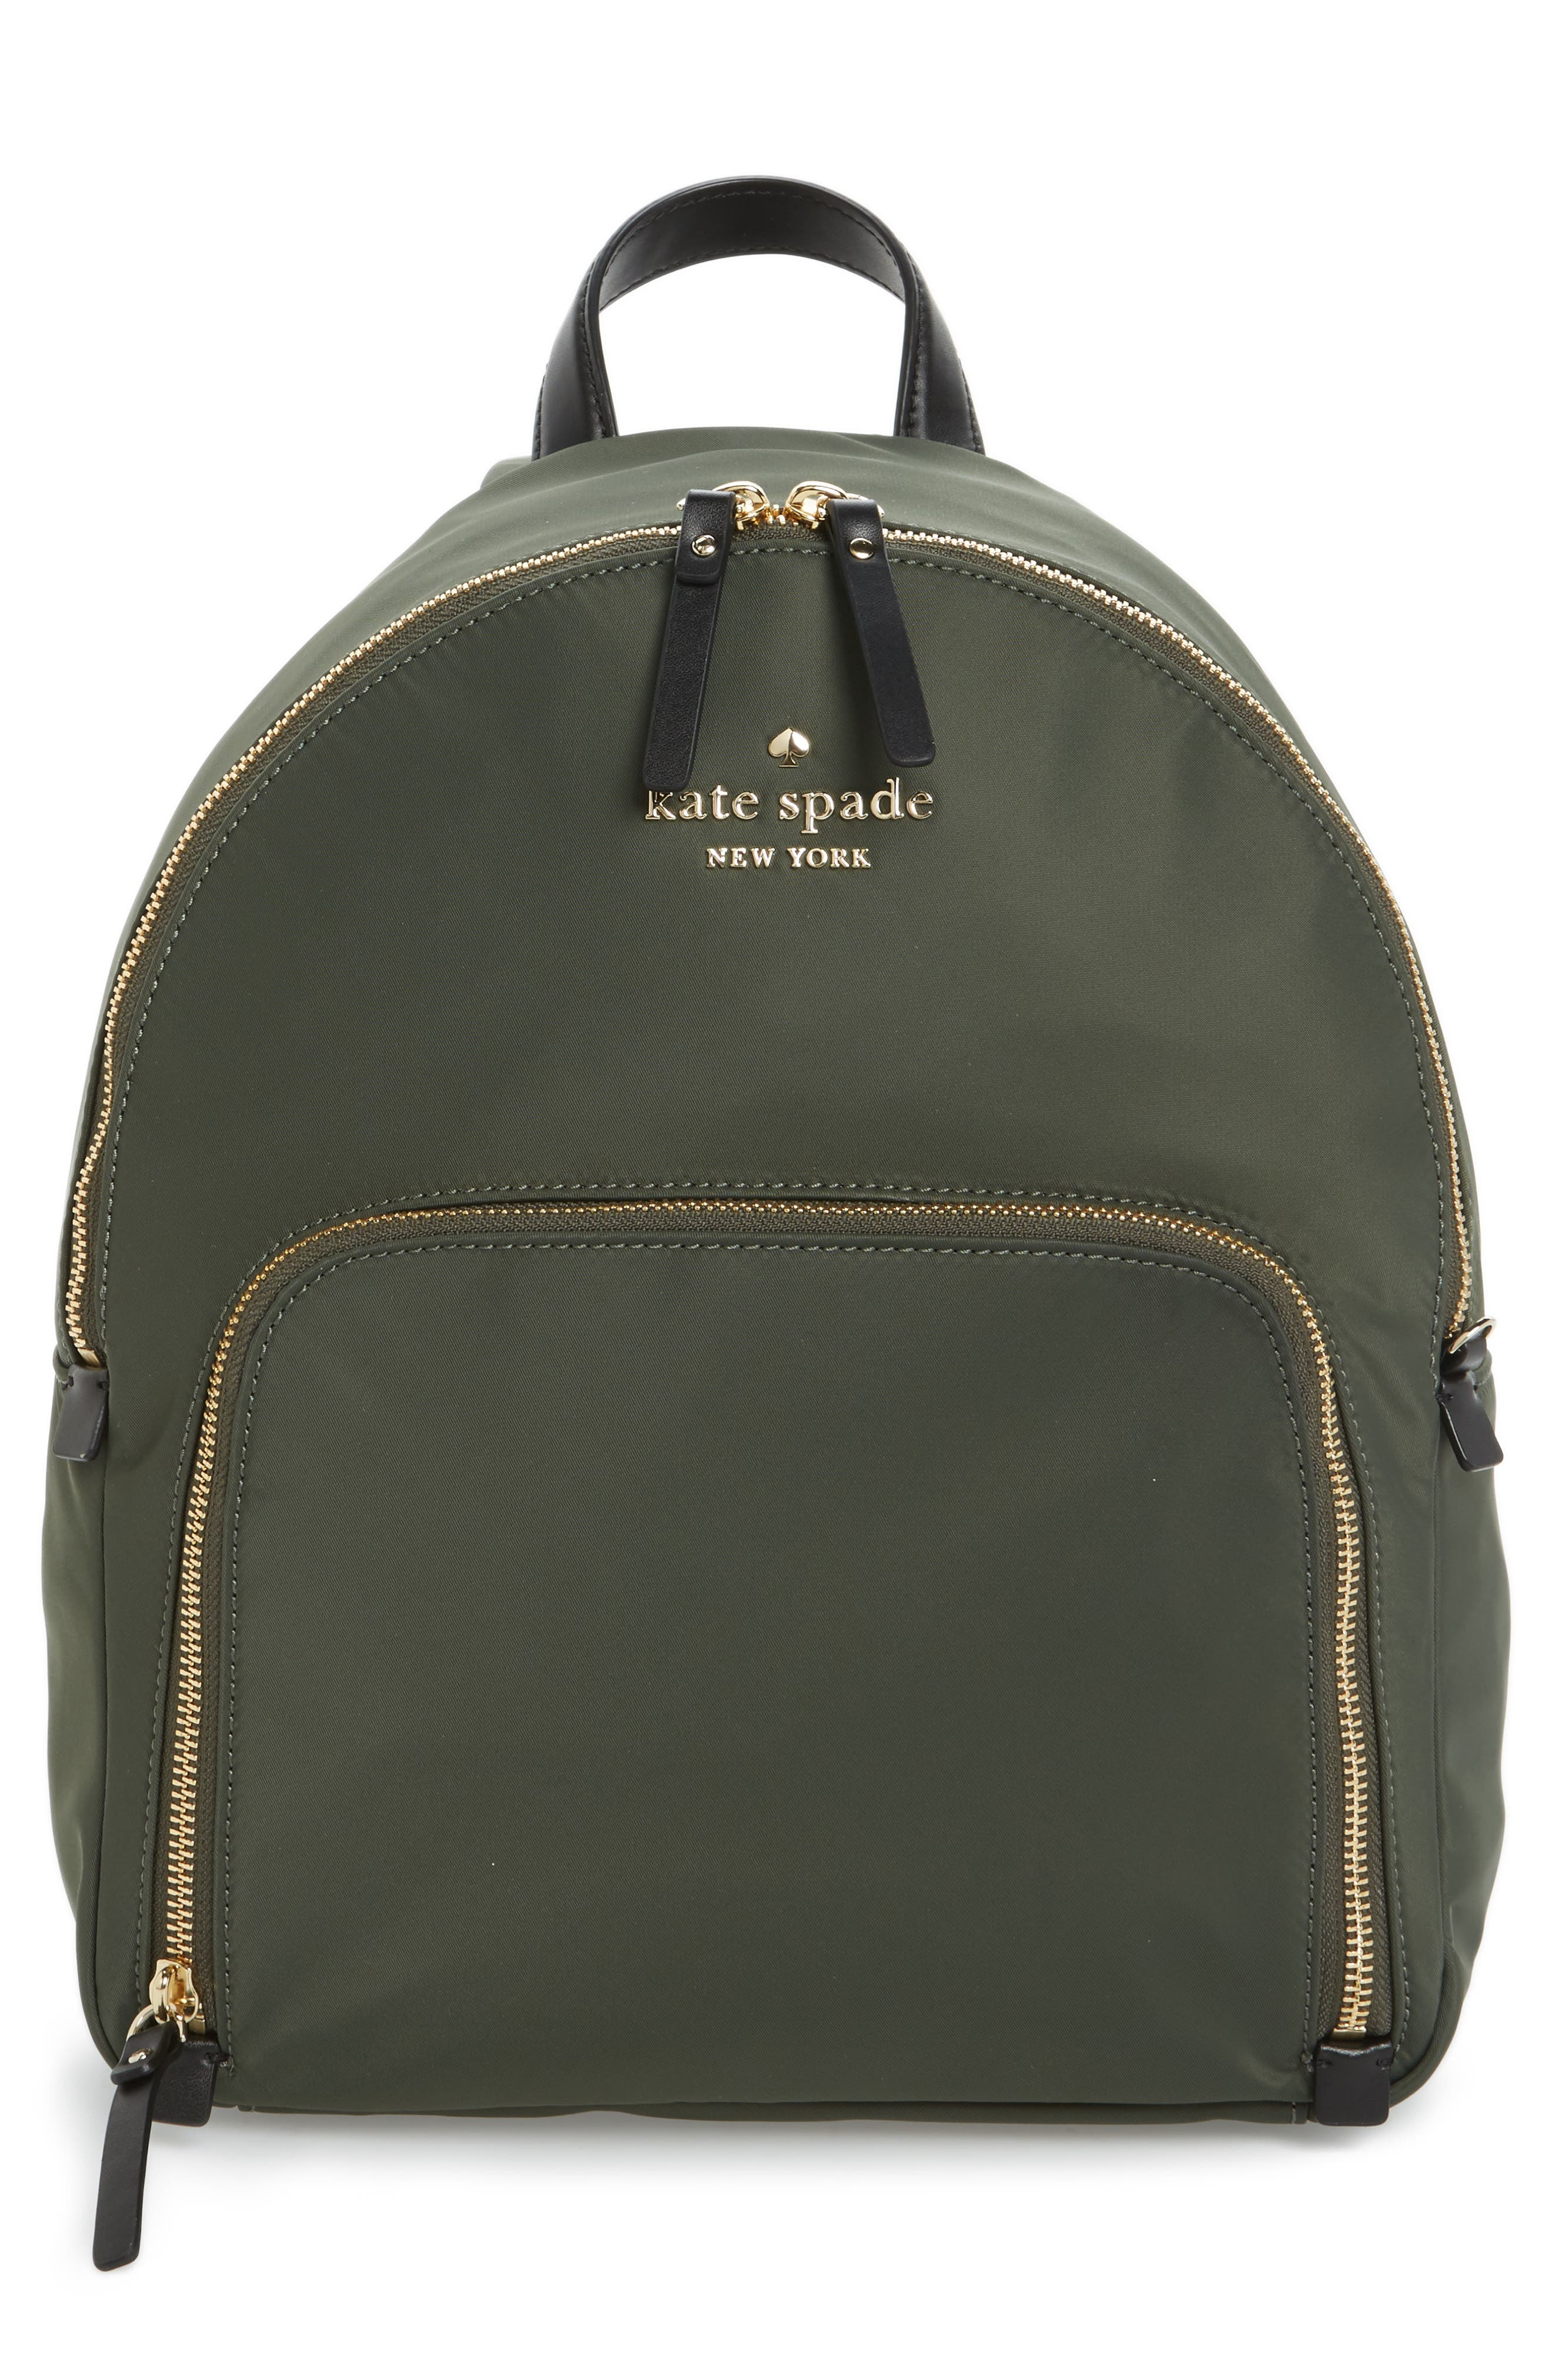 watson lane - hartley nylon backpack,                             Main thumbnail 1, color,                             316